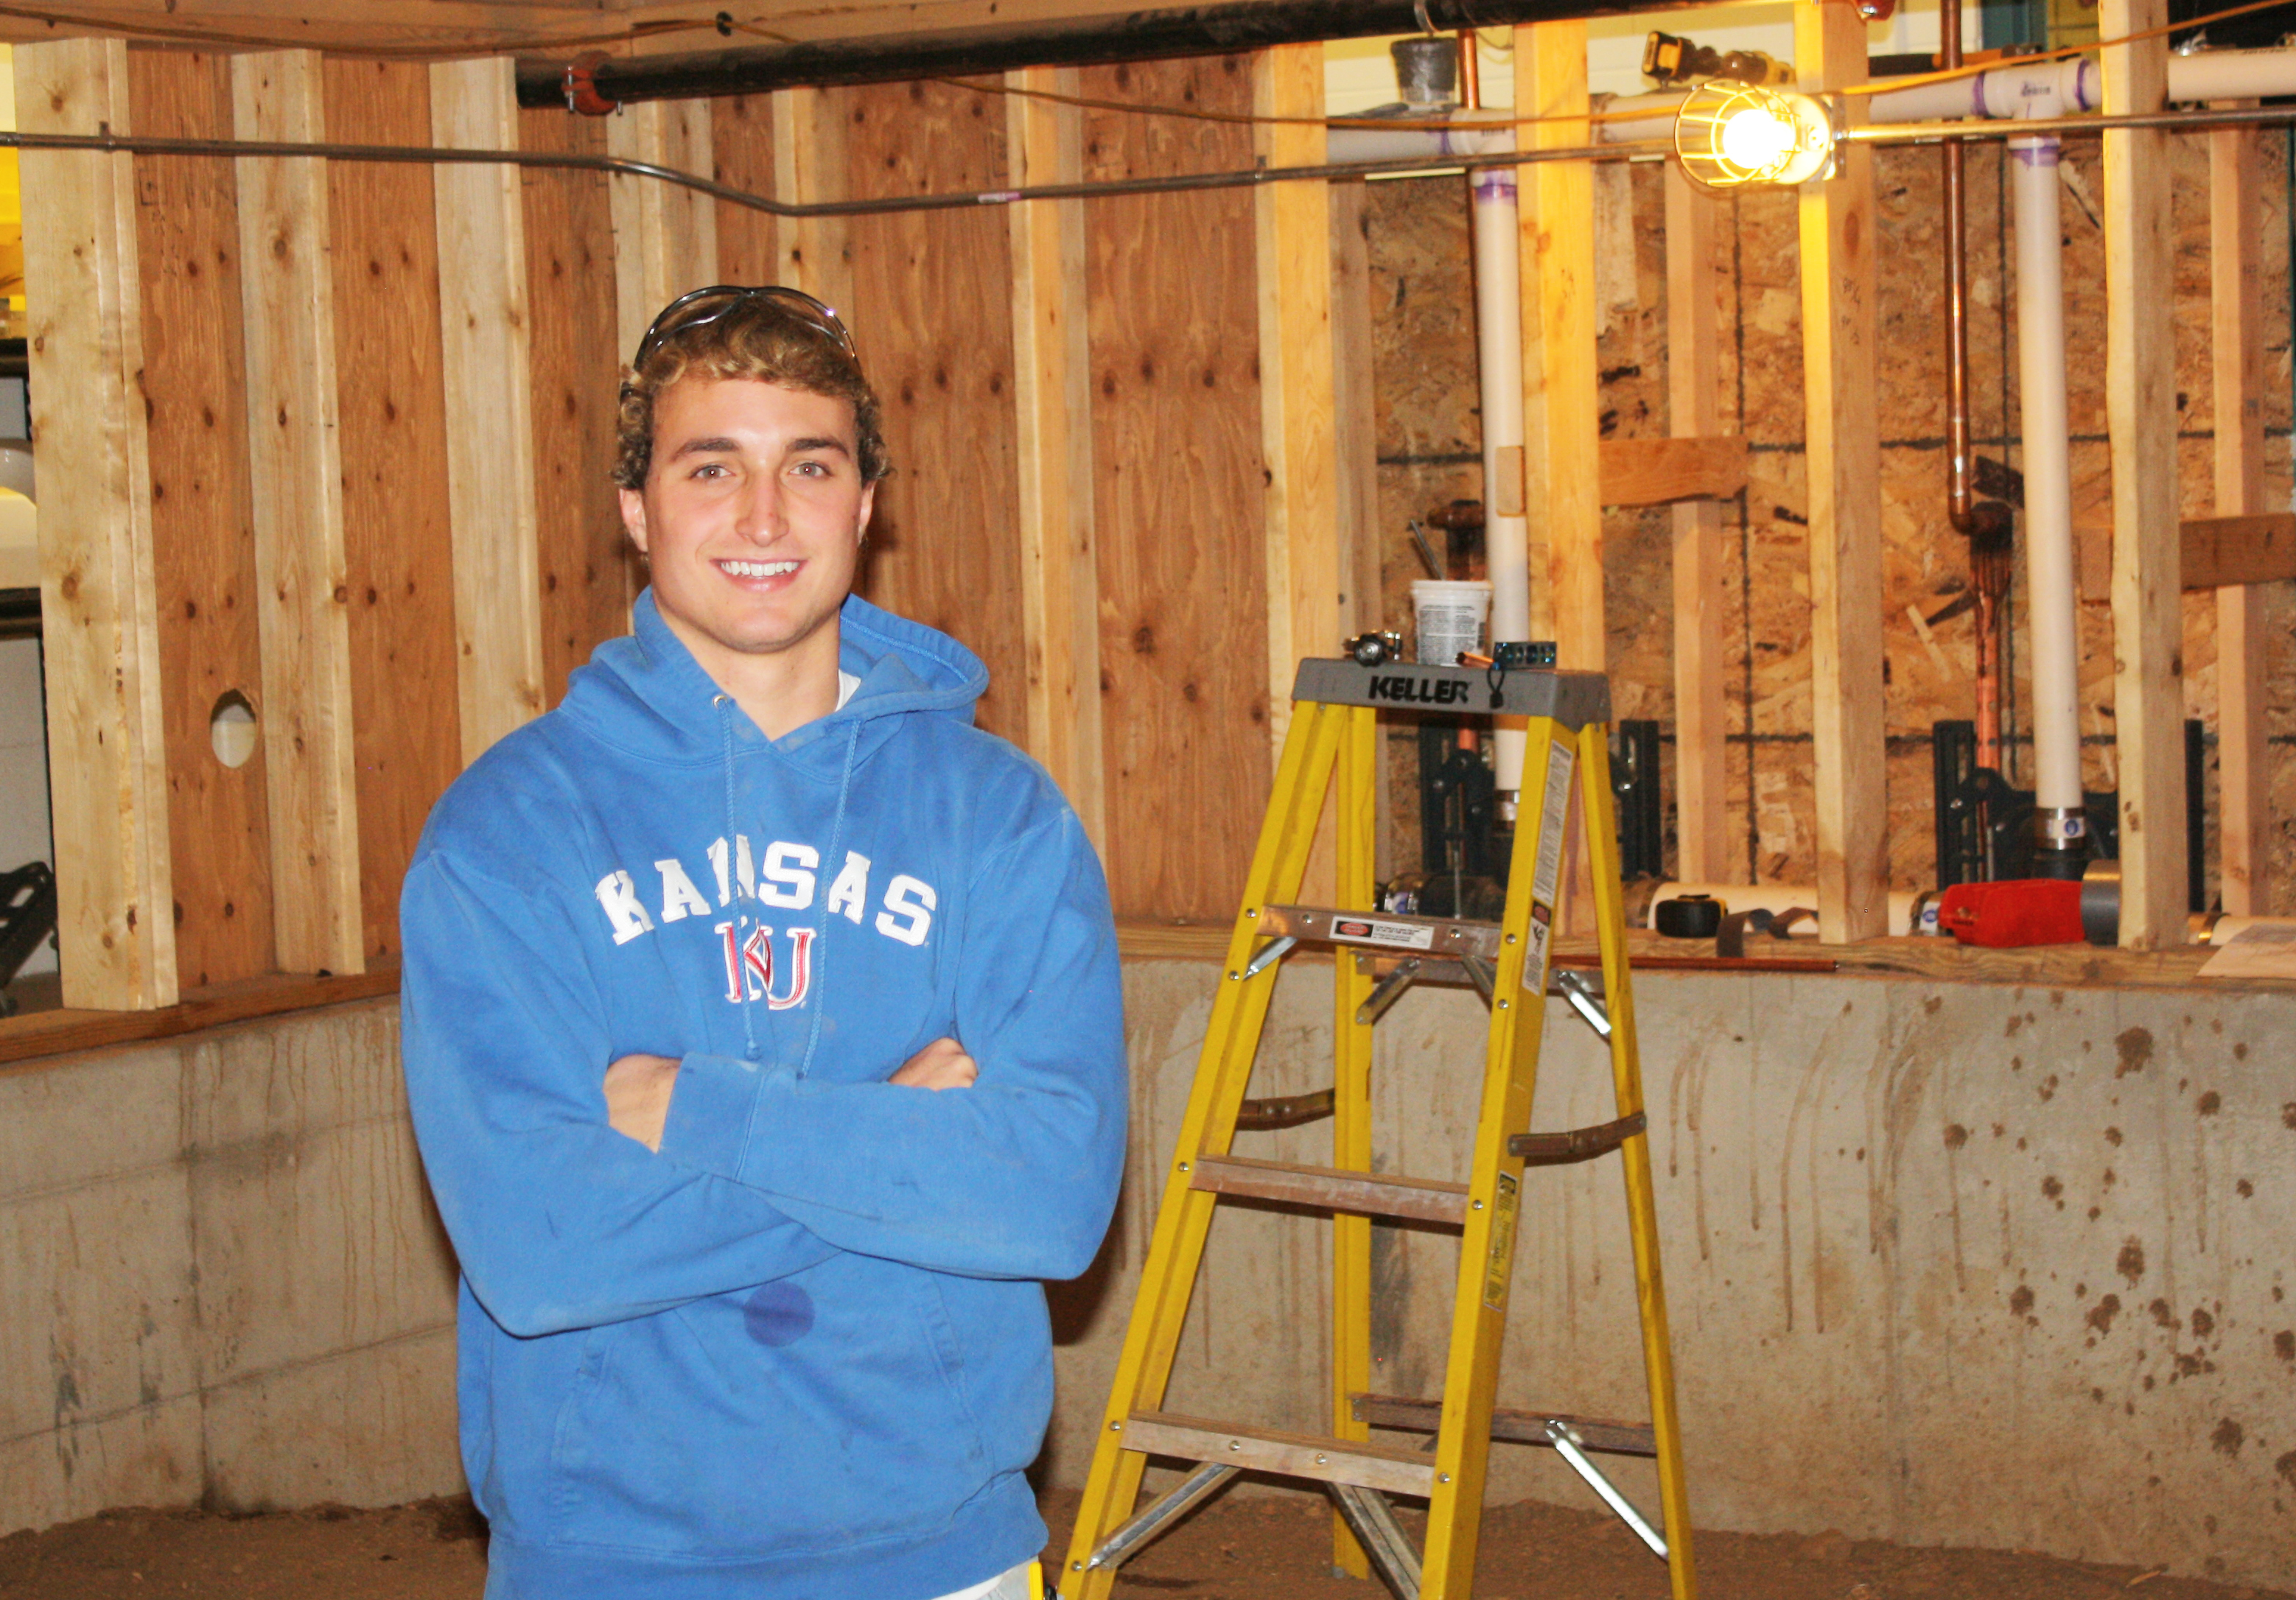 Andrew King, a 2015 Arlington High School graduate, is learning to be a plumber, a trade he hopes to put to use in his hometown.  Photo by Wendy Royston